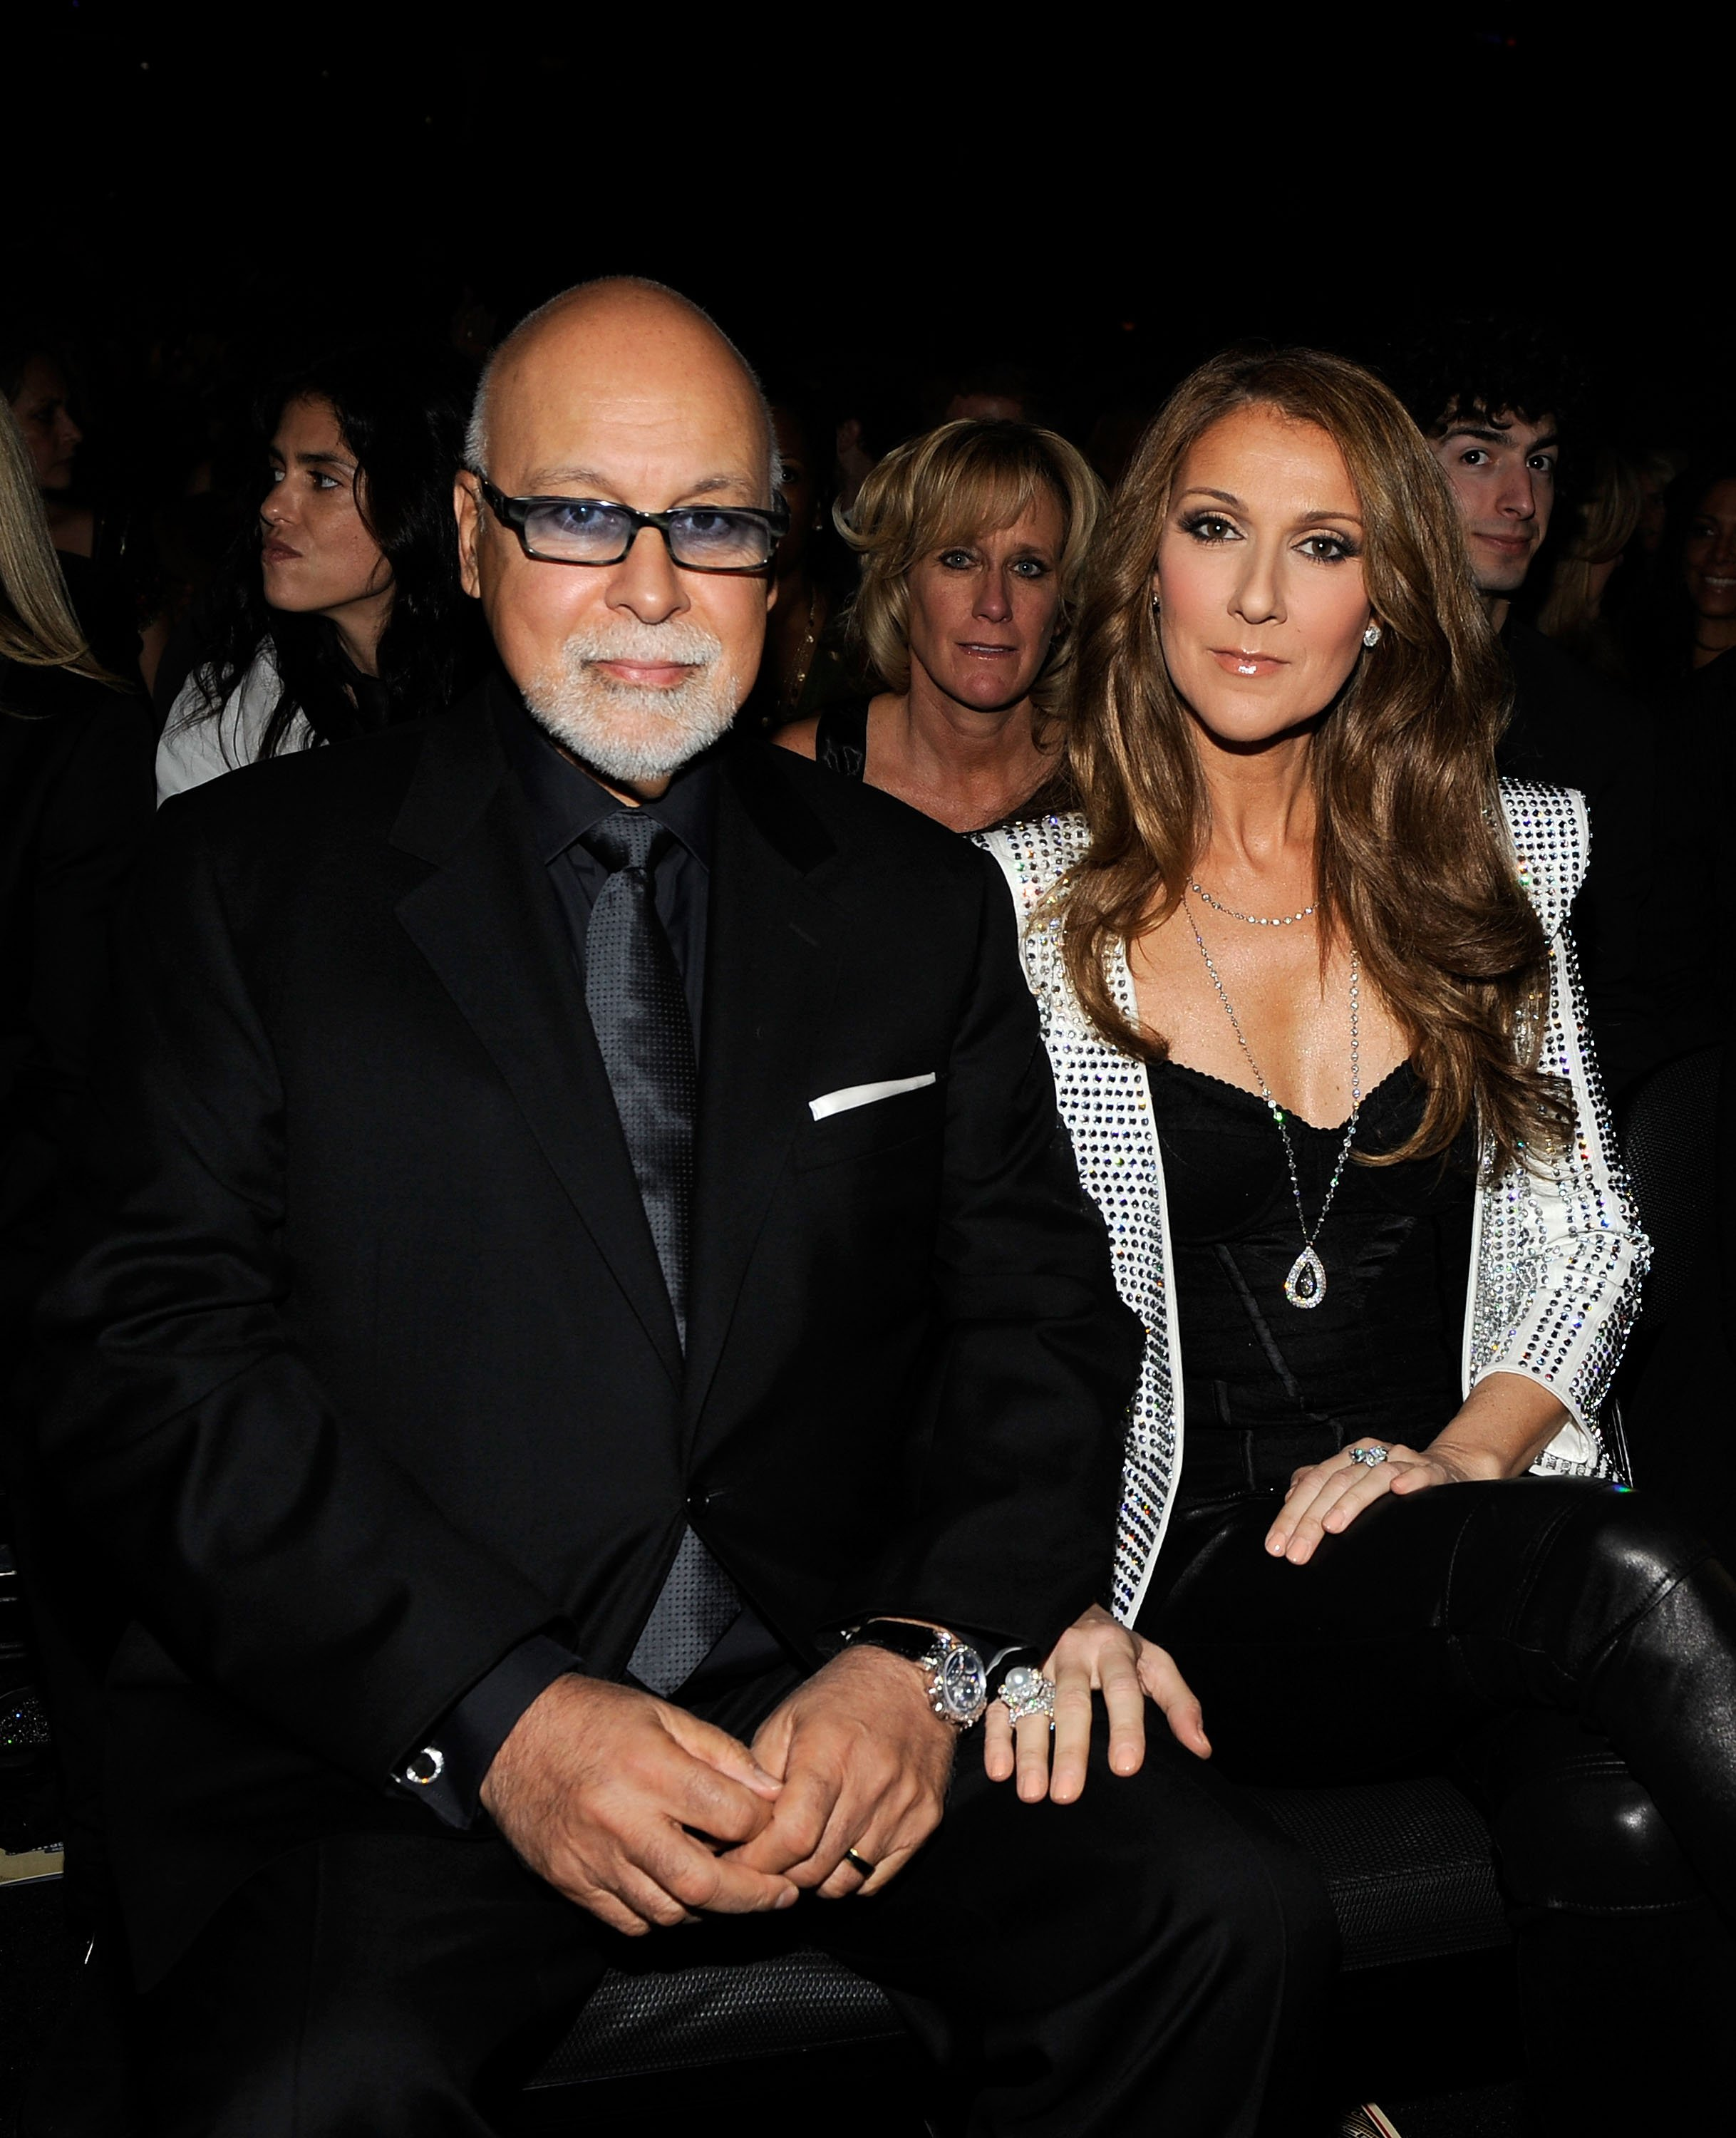 Celine Dion (R) and husband Rene Angelil in the audience during the 52nd Annual GRAMMY Awards held at Staples Center on January 31, 2010, in Los Angeles, California. | Source: Getty Images.